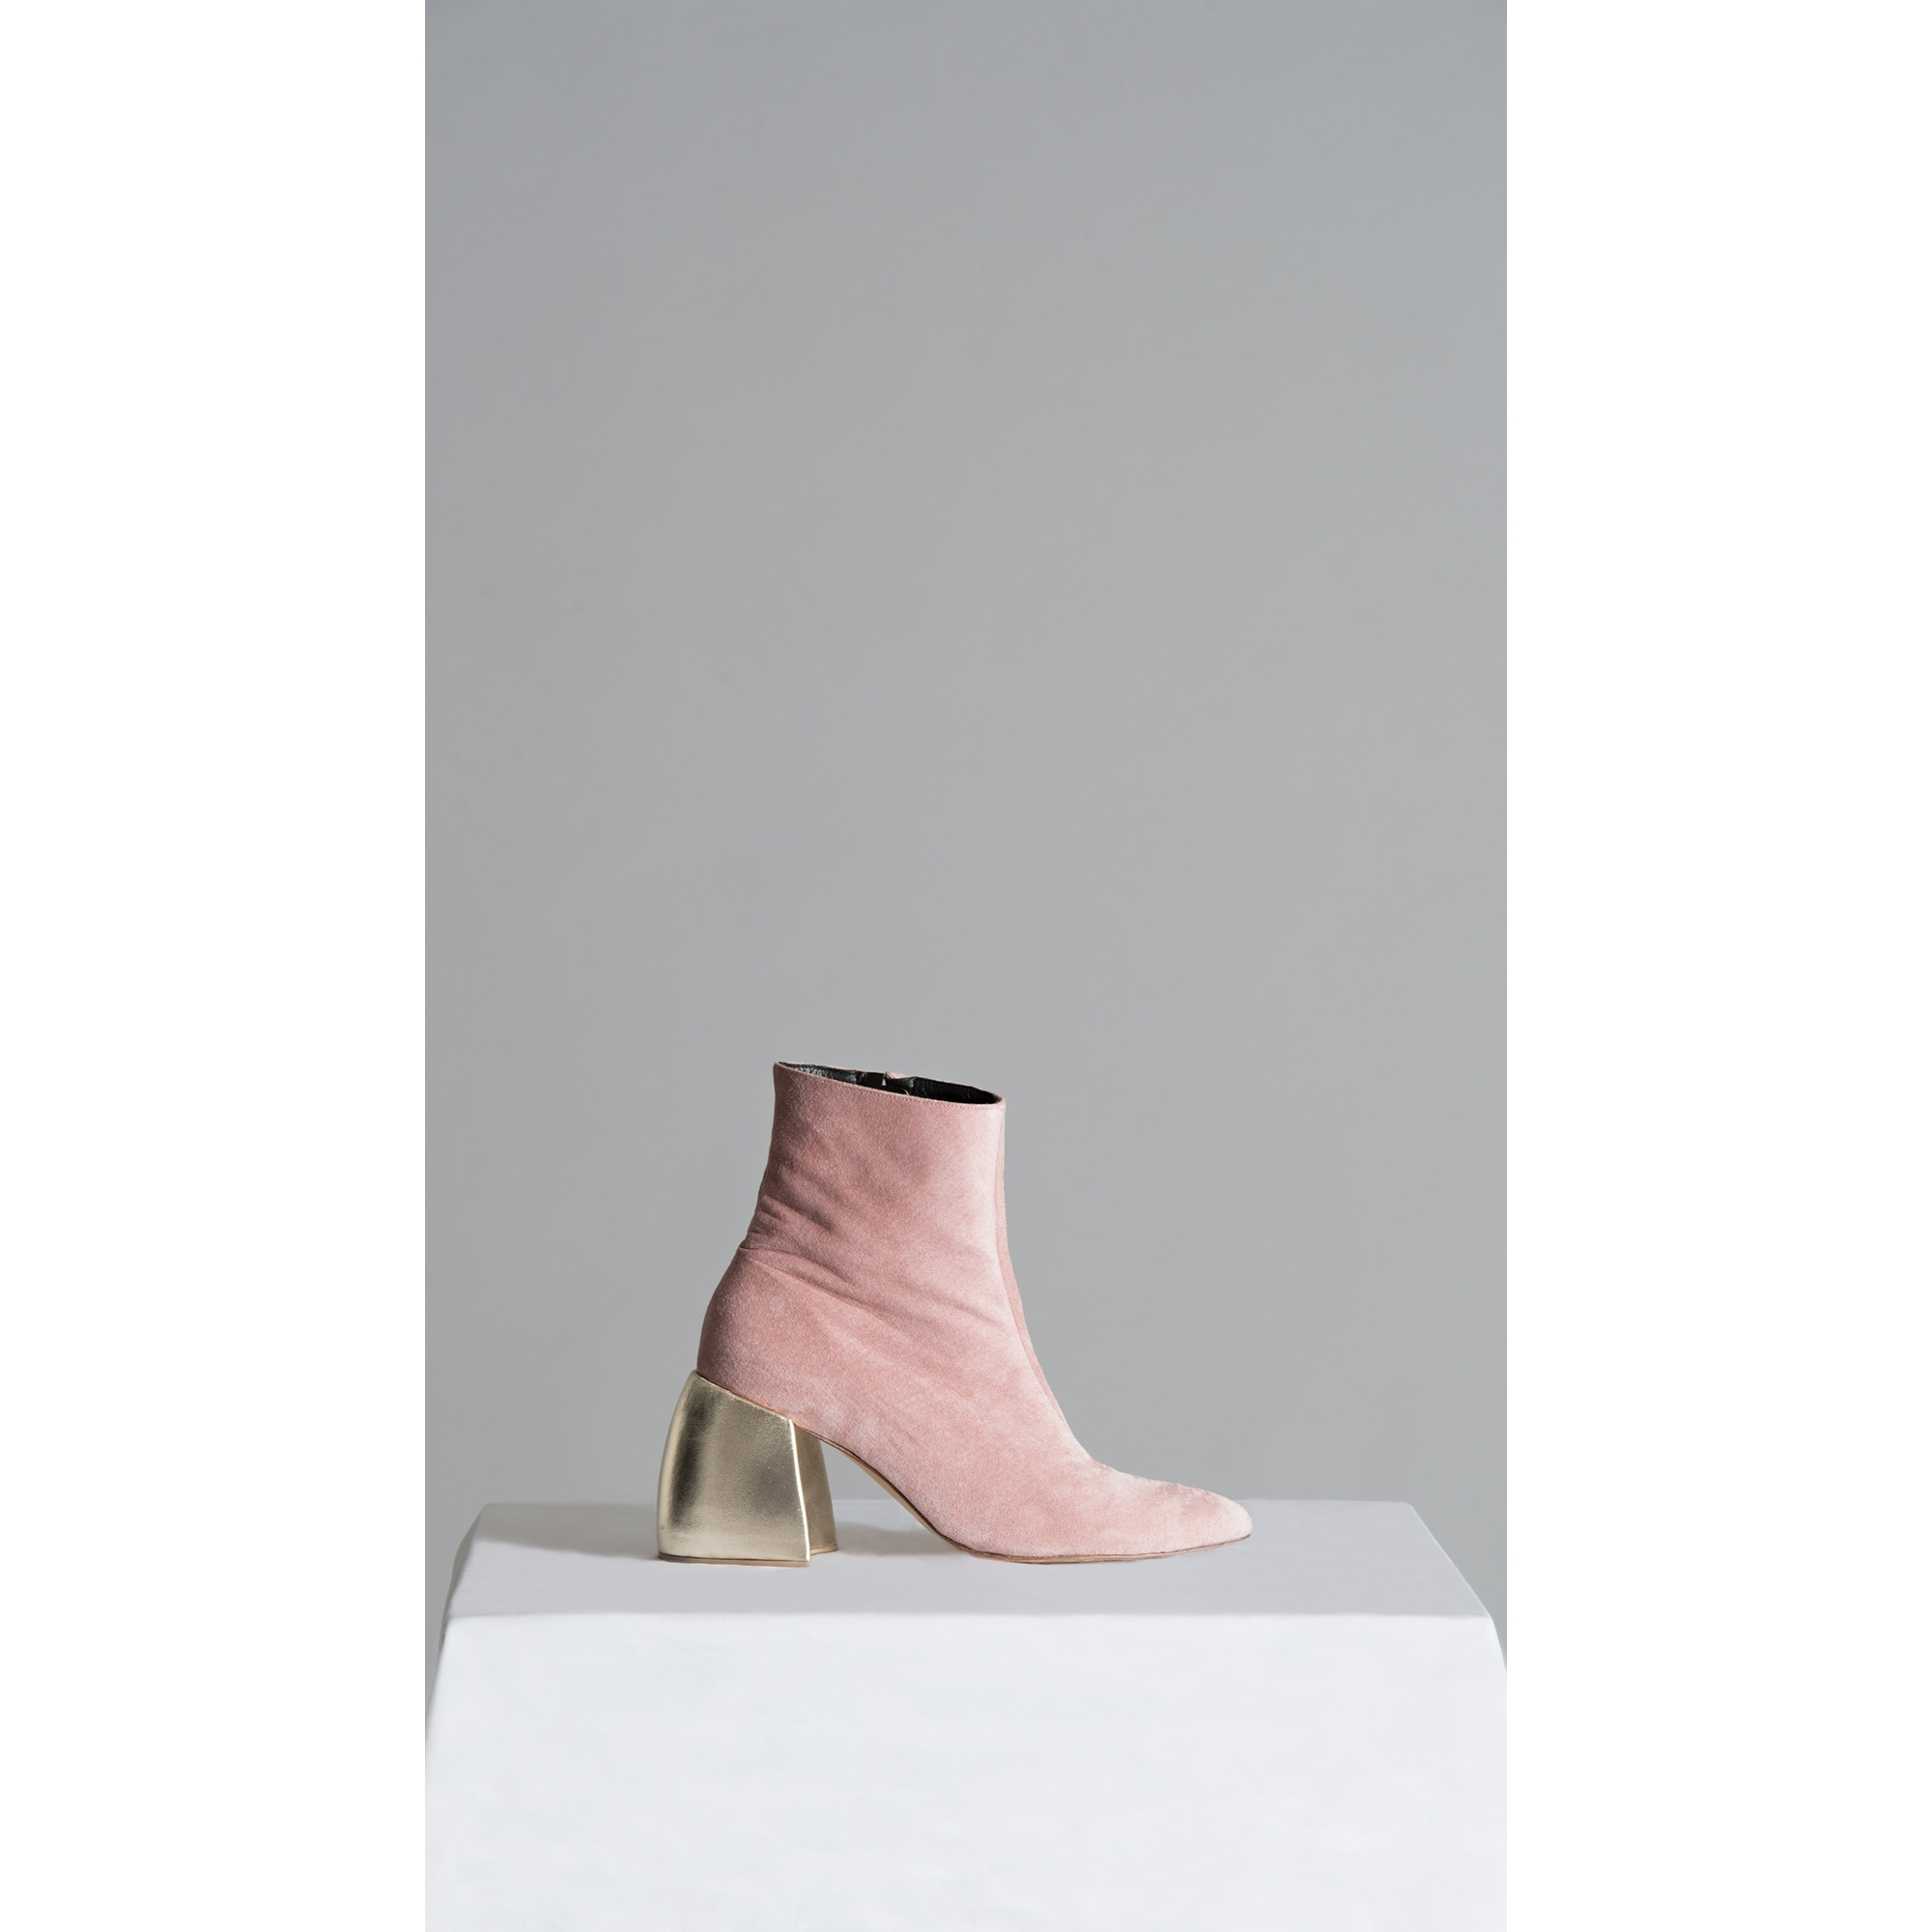 2d23b2e3c2d VINCENT LAPP Made to Order Pink Suede Ankle Boots with Wooden ...